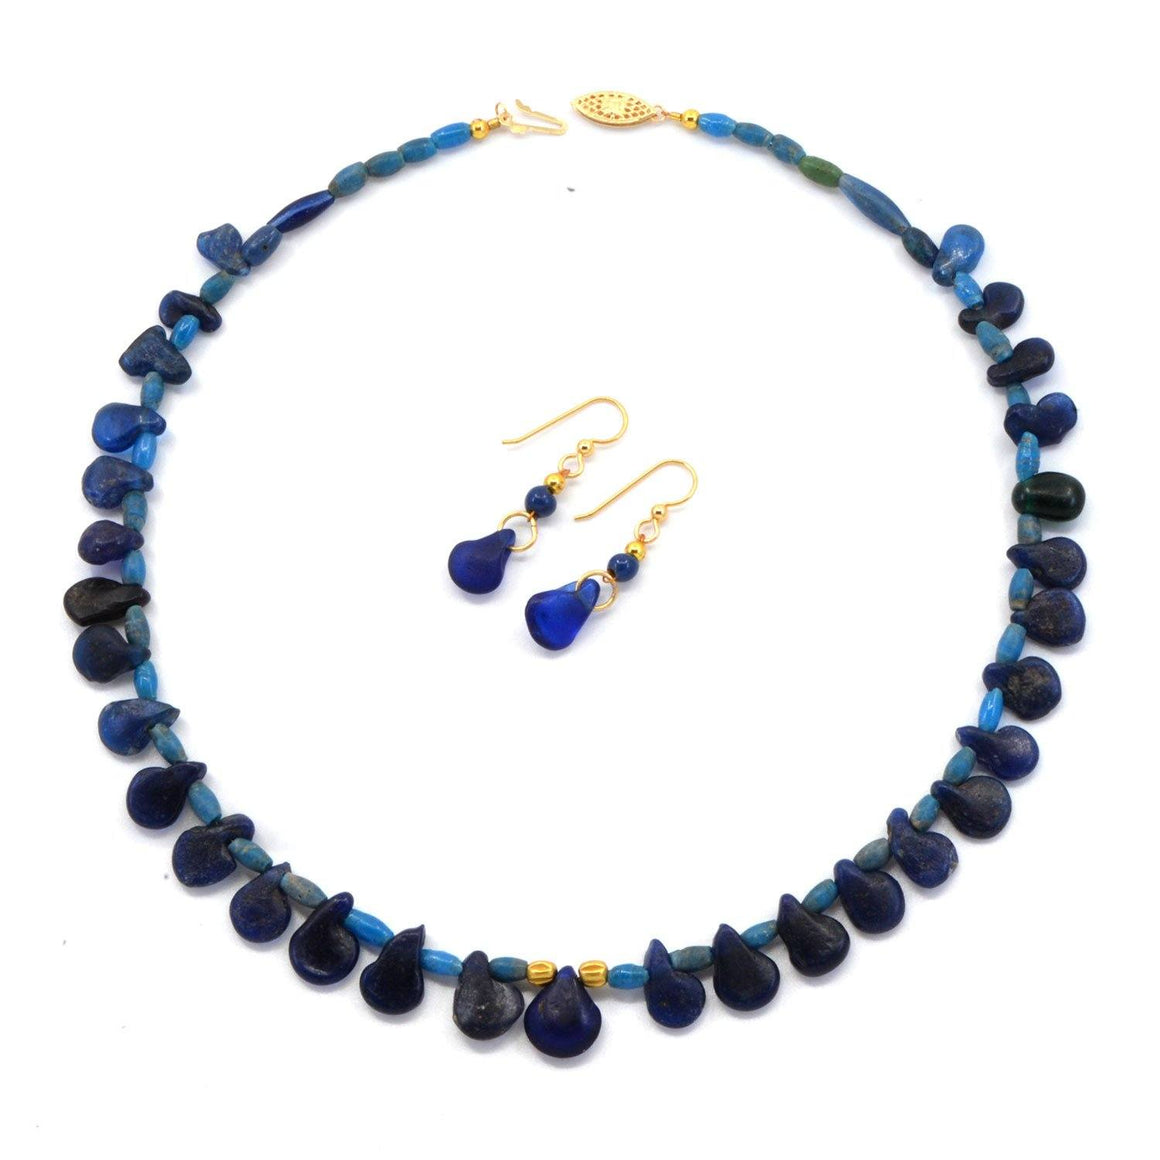 A Roman Blue Glass Necklace with Earrings, Roman Imperial Period, ca. 1st - 2nd Century AD - Sands of Time Ancient Art